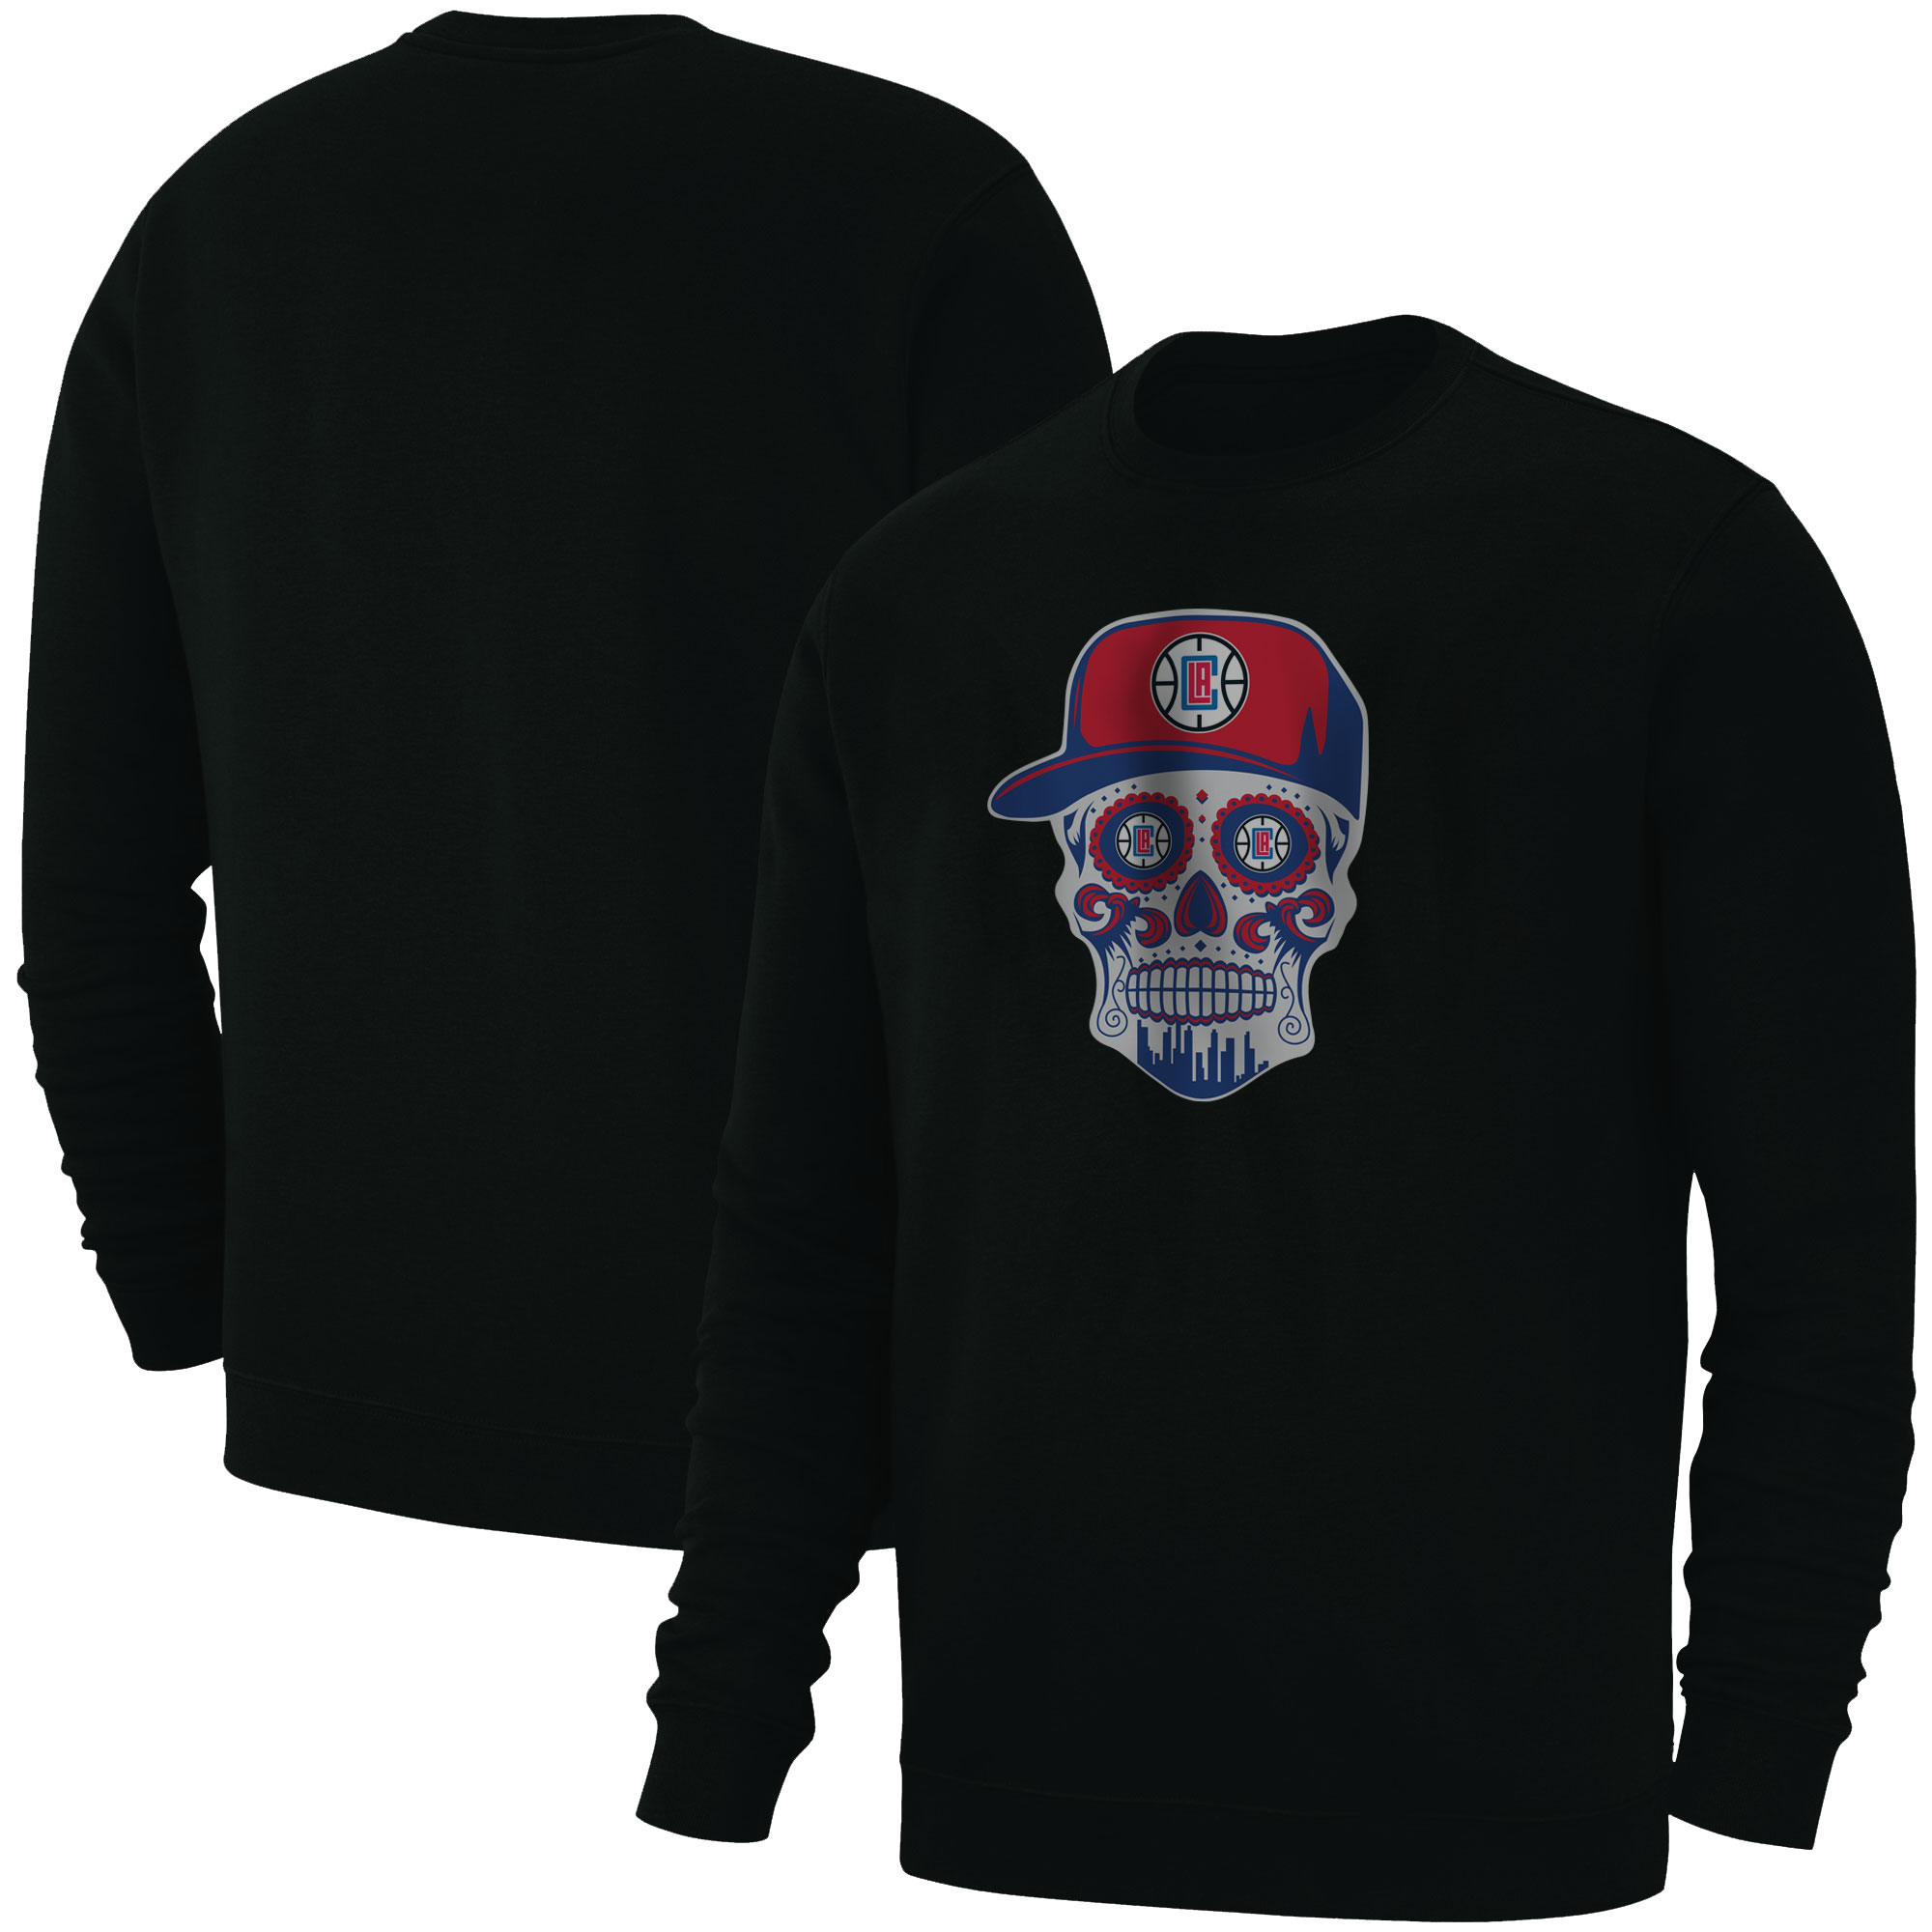 Clippers Skull Basic (BSC-BLC-NP-450-CLIPPERS-SKULL)